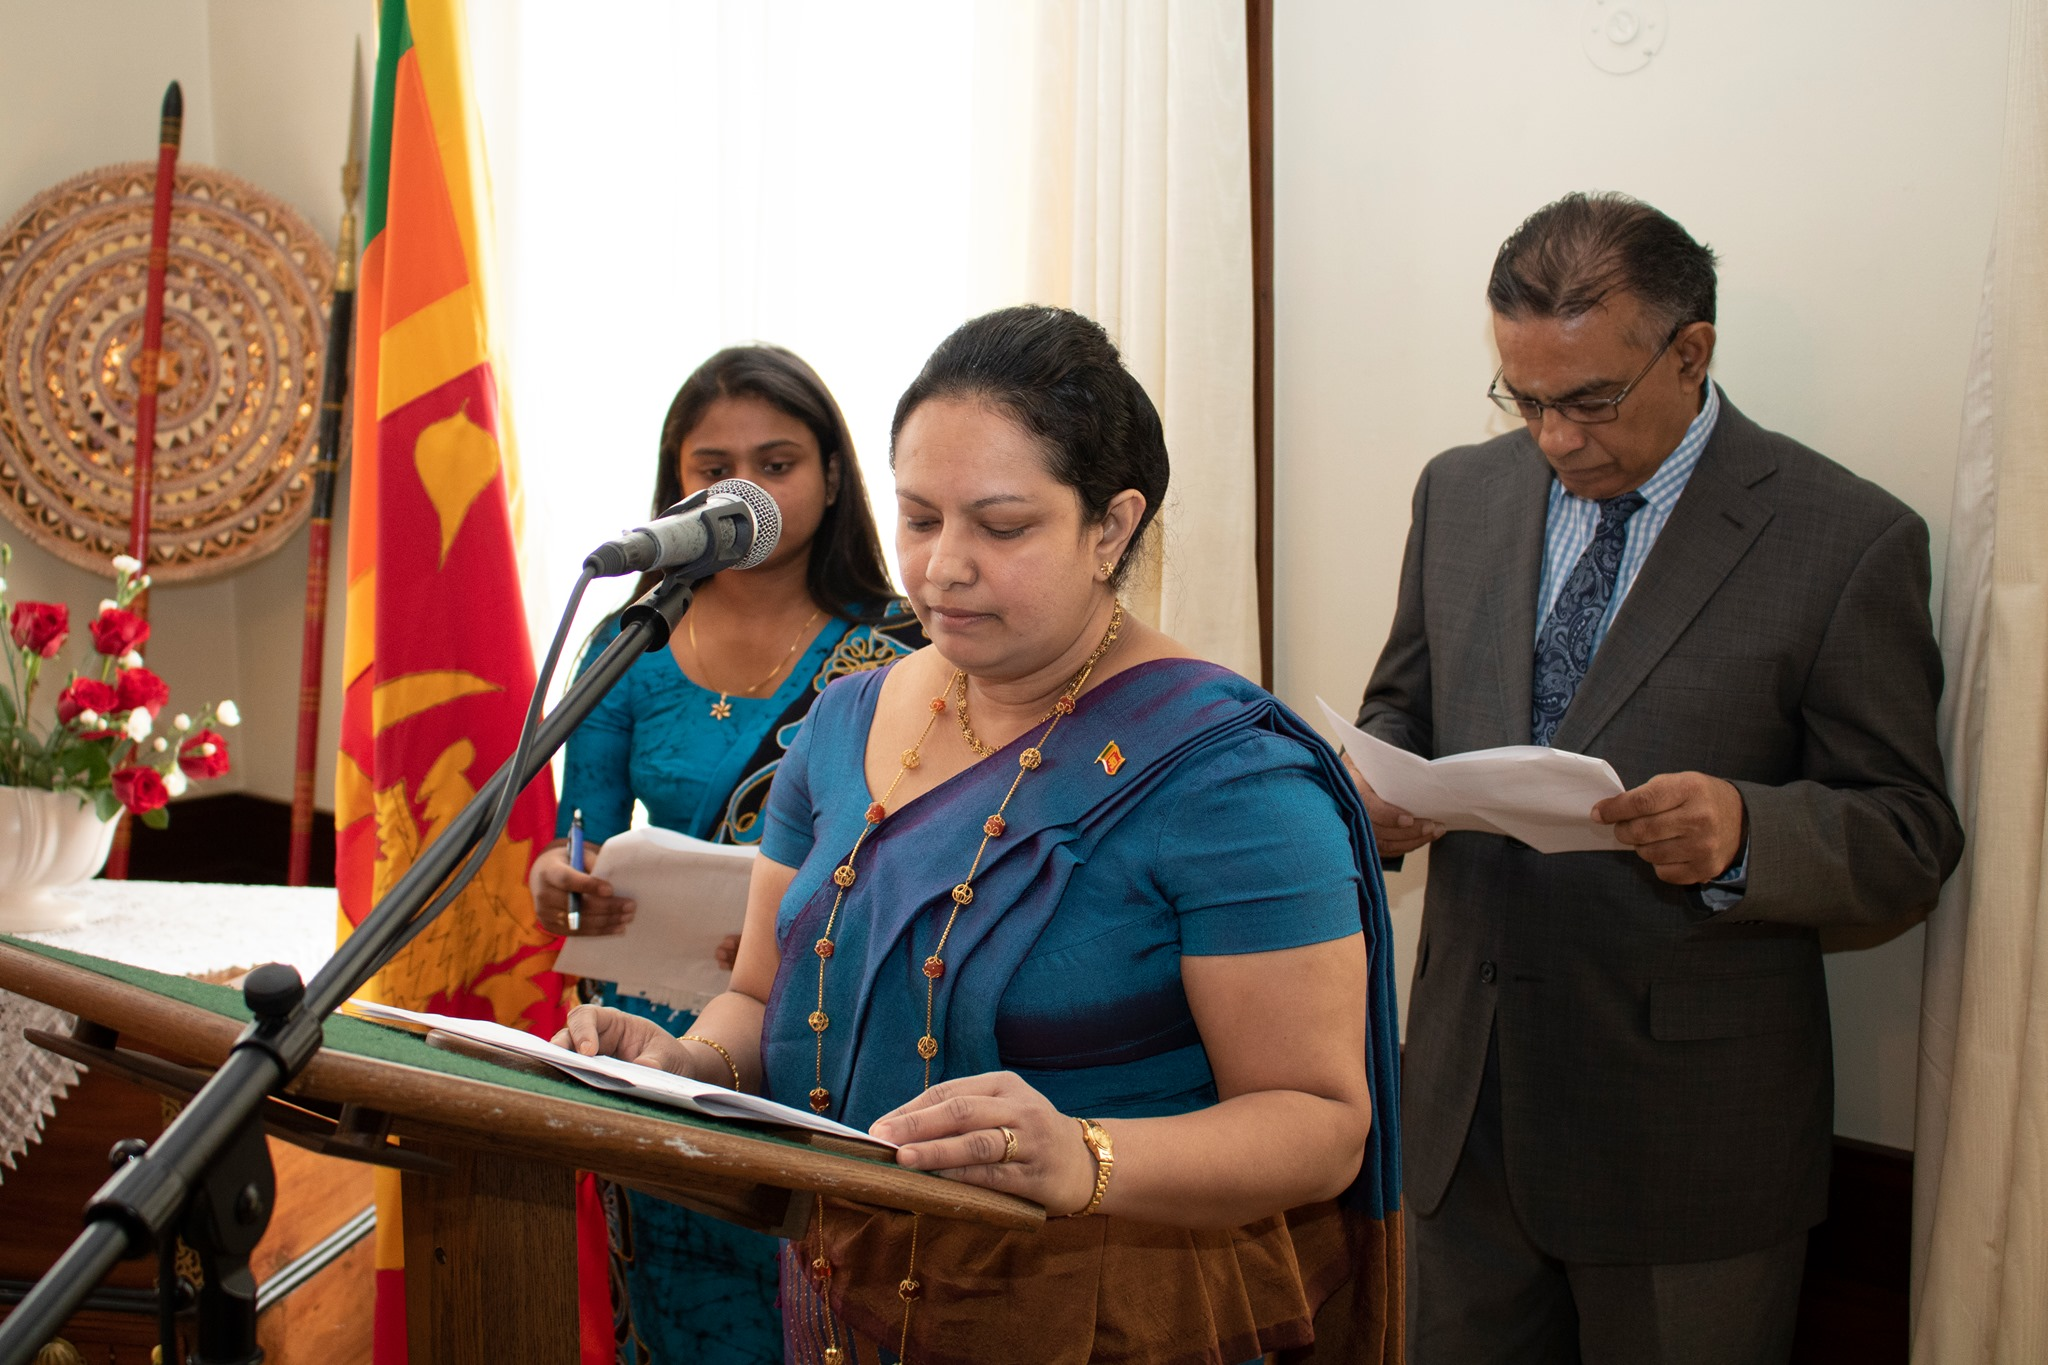 Sri Lanka for Disarmament